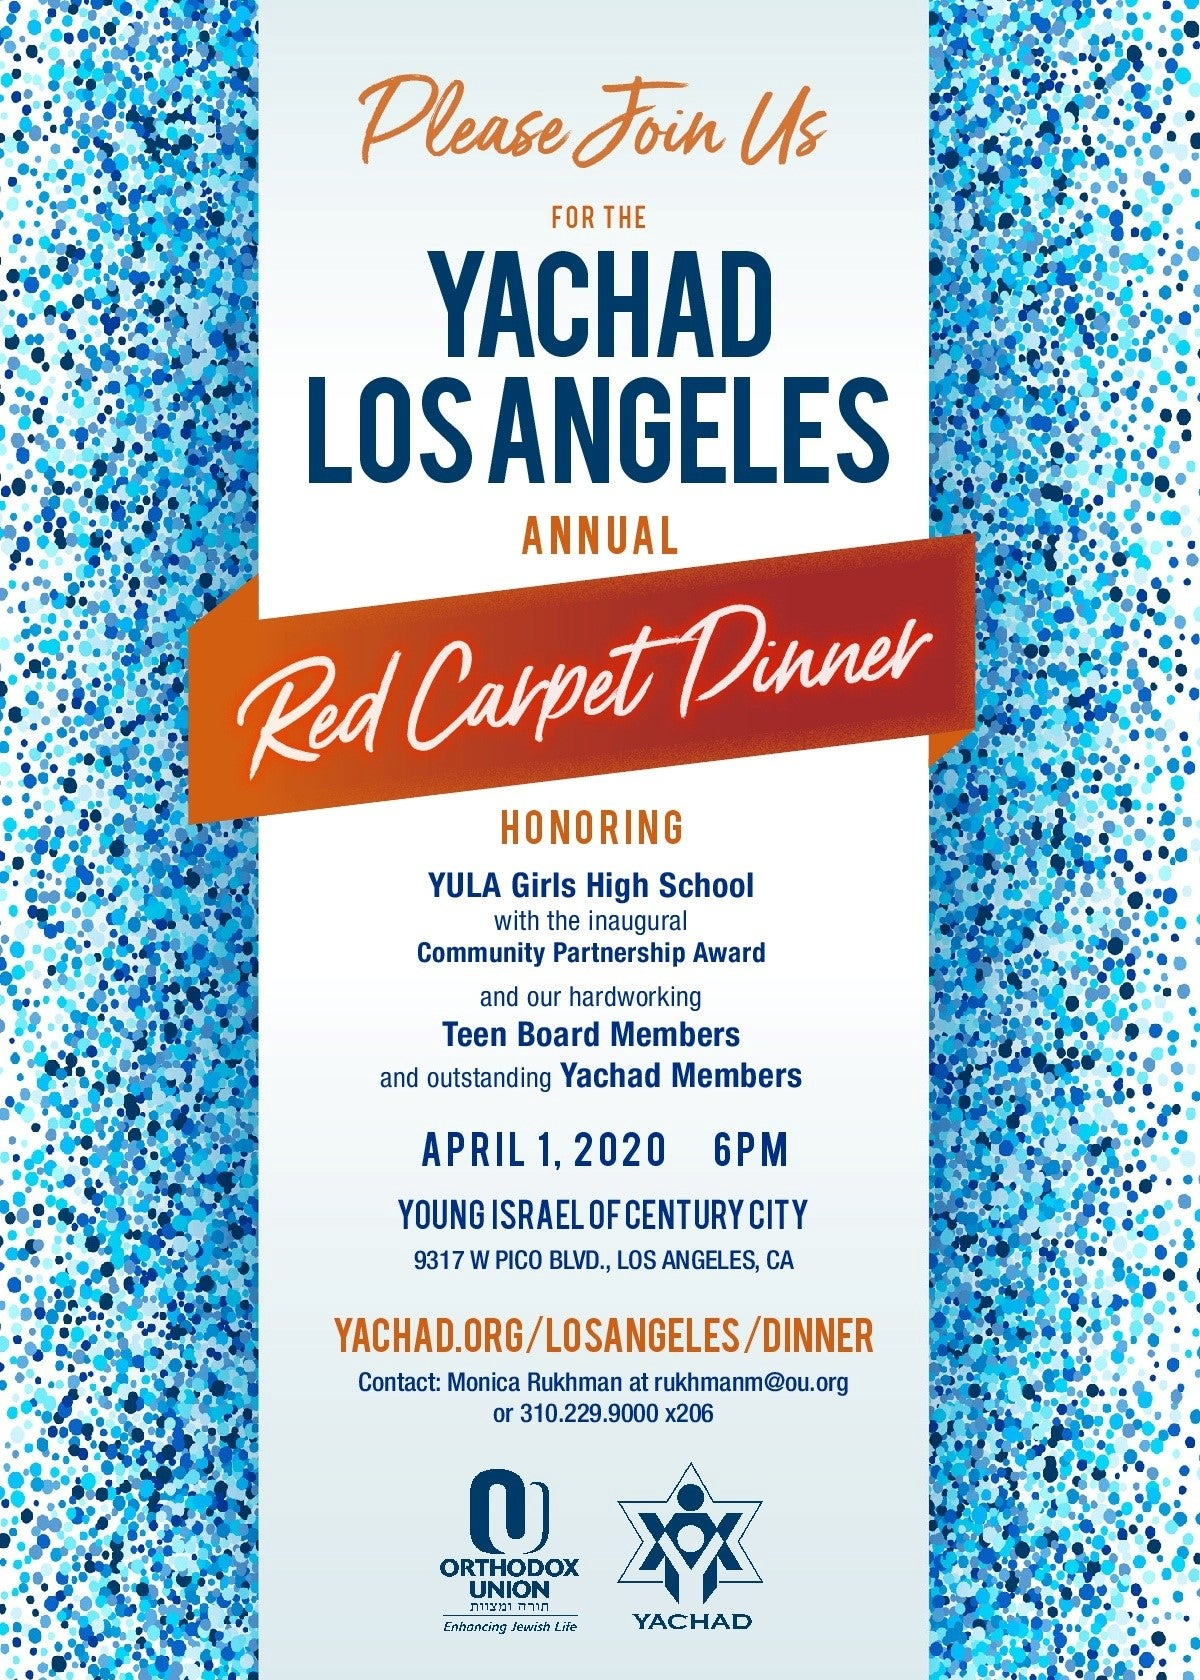 Yachad Red Carpet Dinner | HaMercaz | The Jewish Federation of Greater Los Angeles